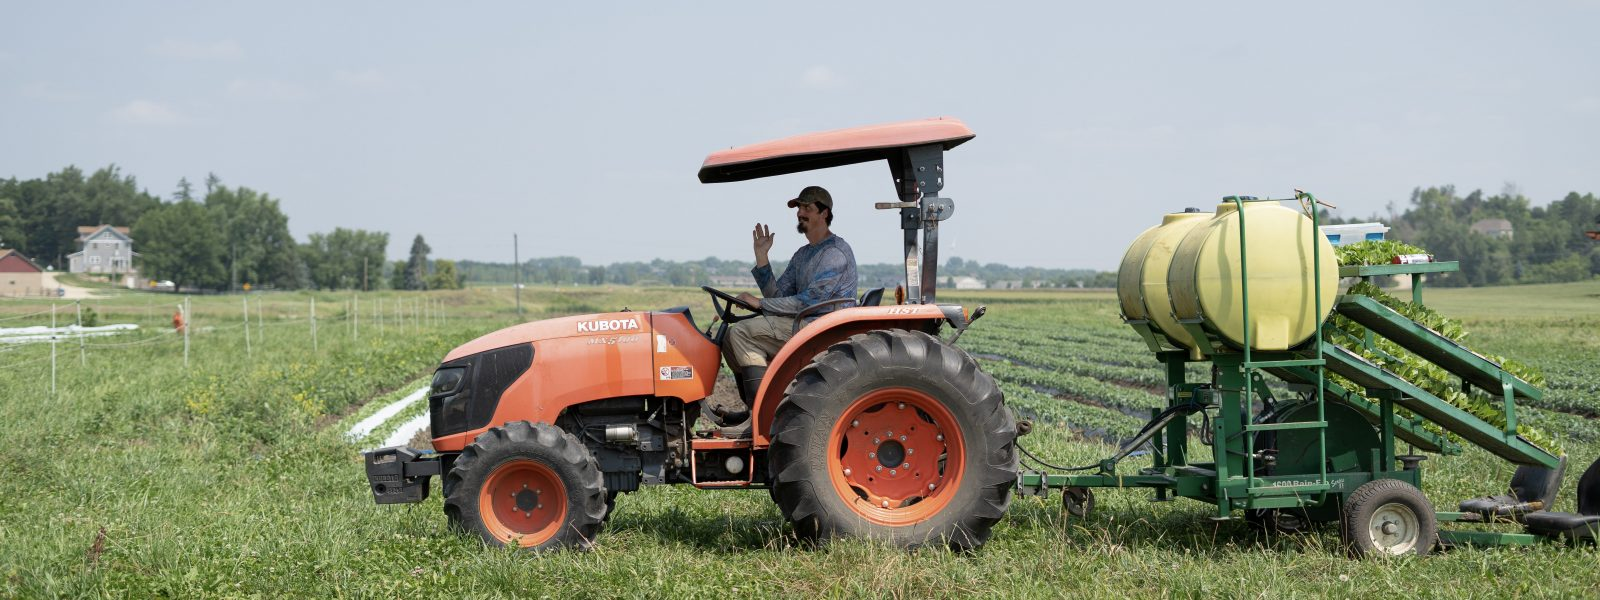 person in a tractor waving